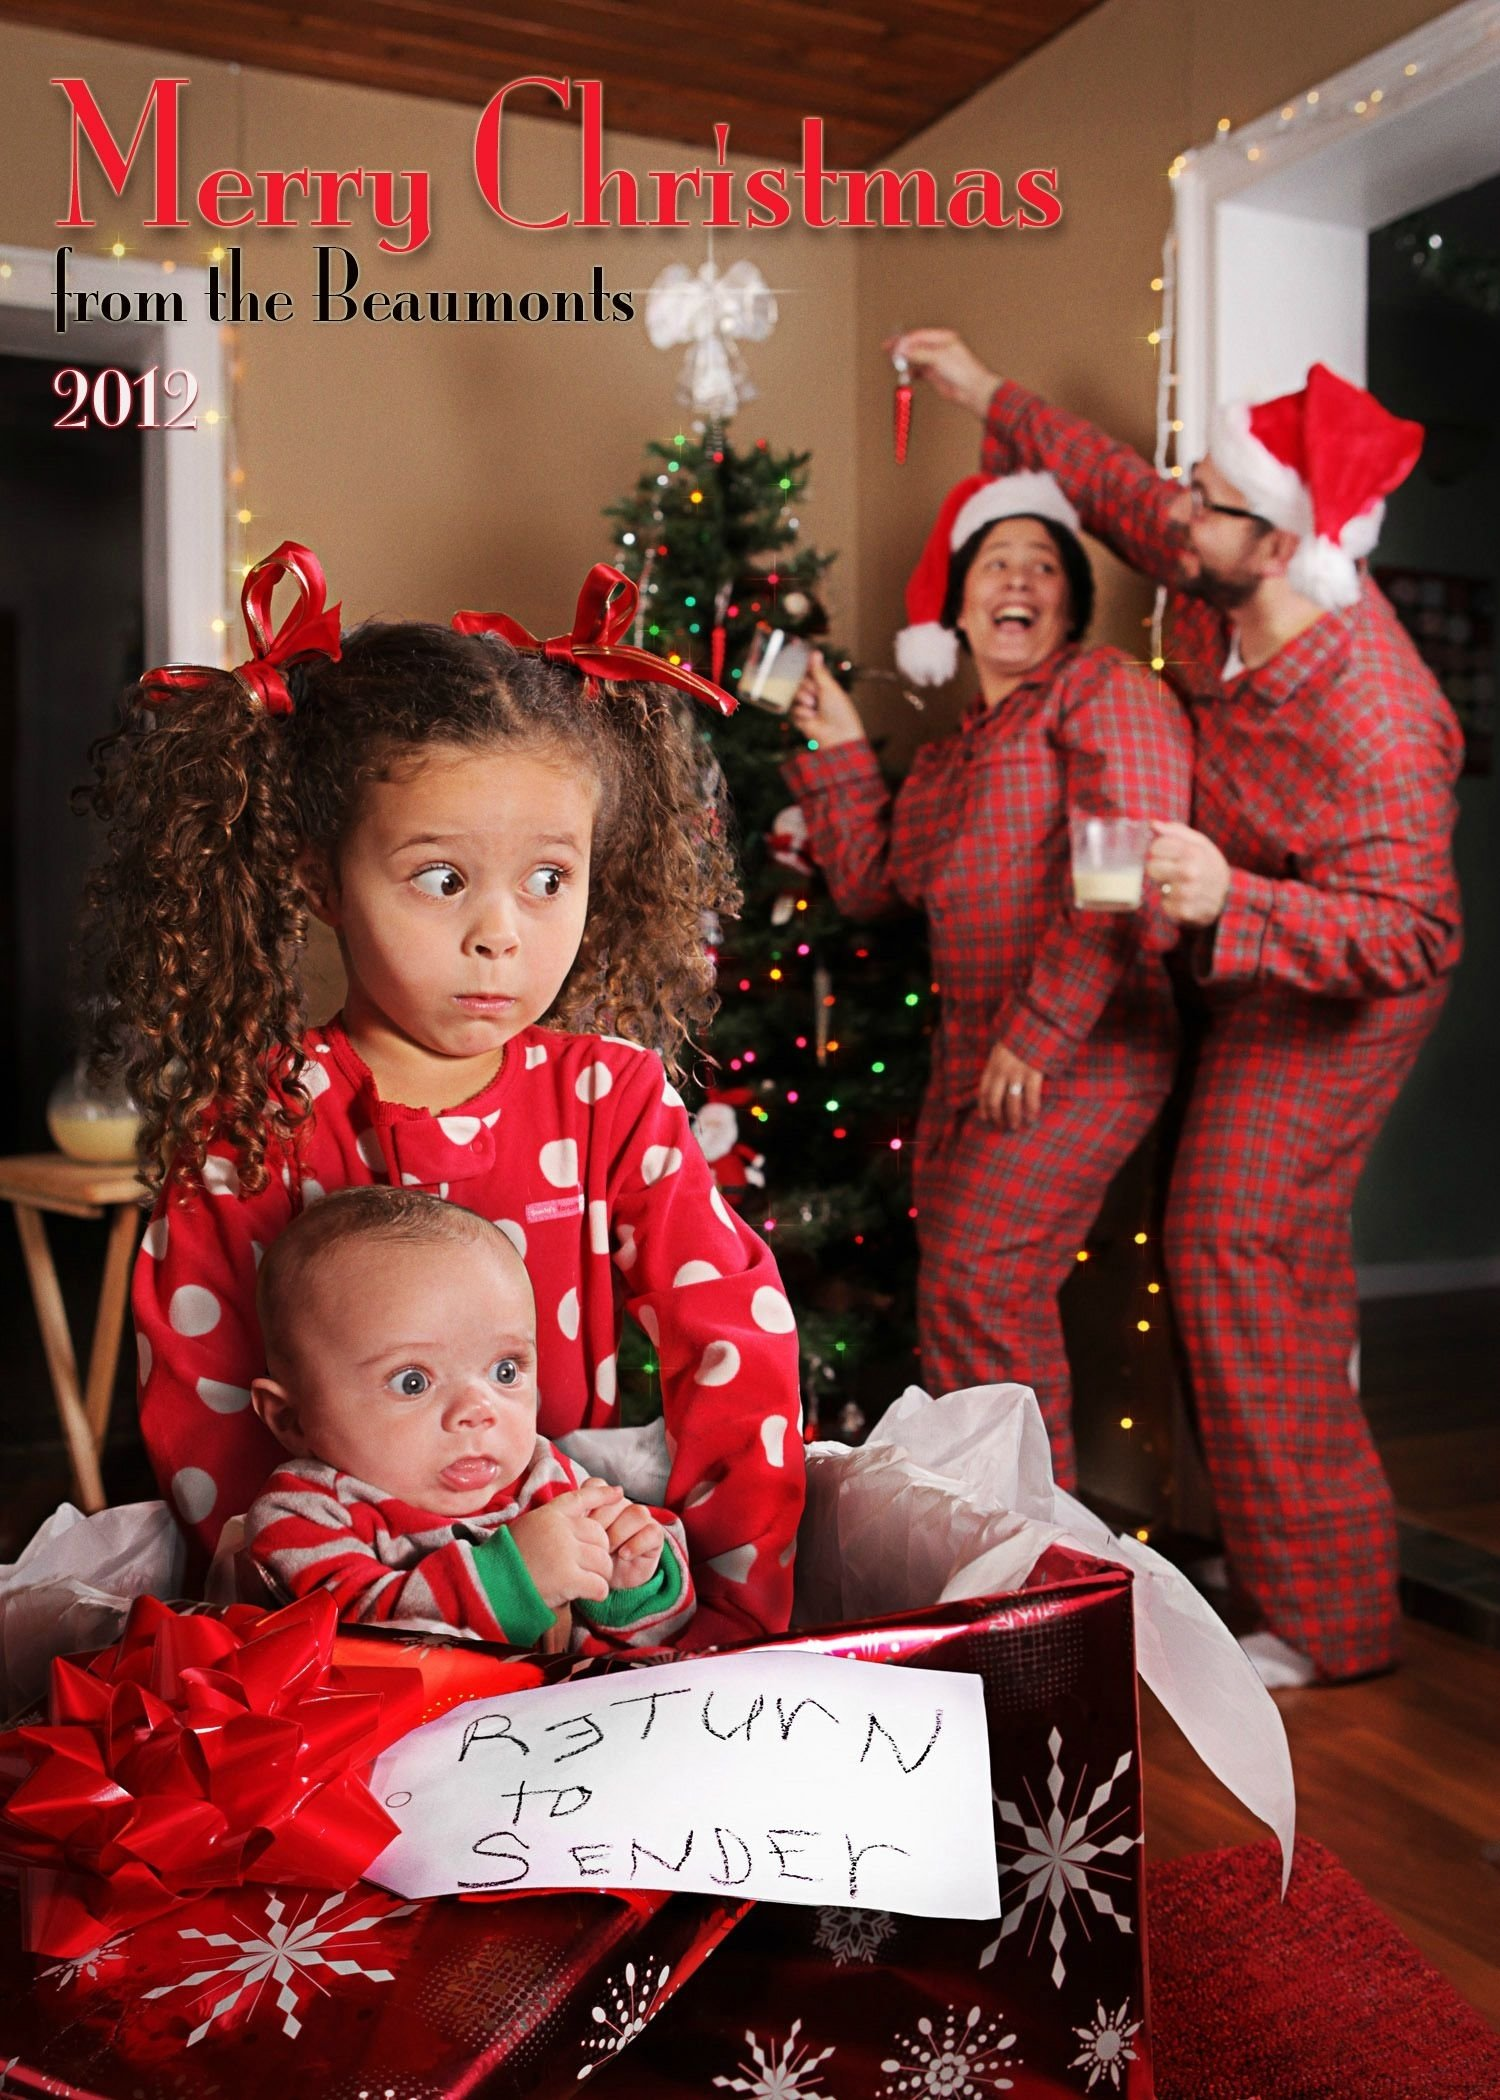 10 Nice Funny Christmas Card Photo Ideas For Kids this years christmas cardreturn to sender funny 2021